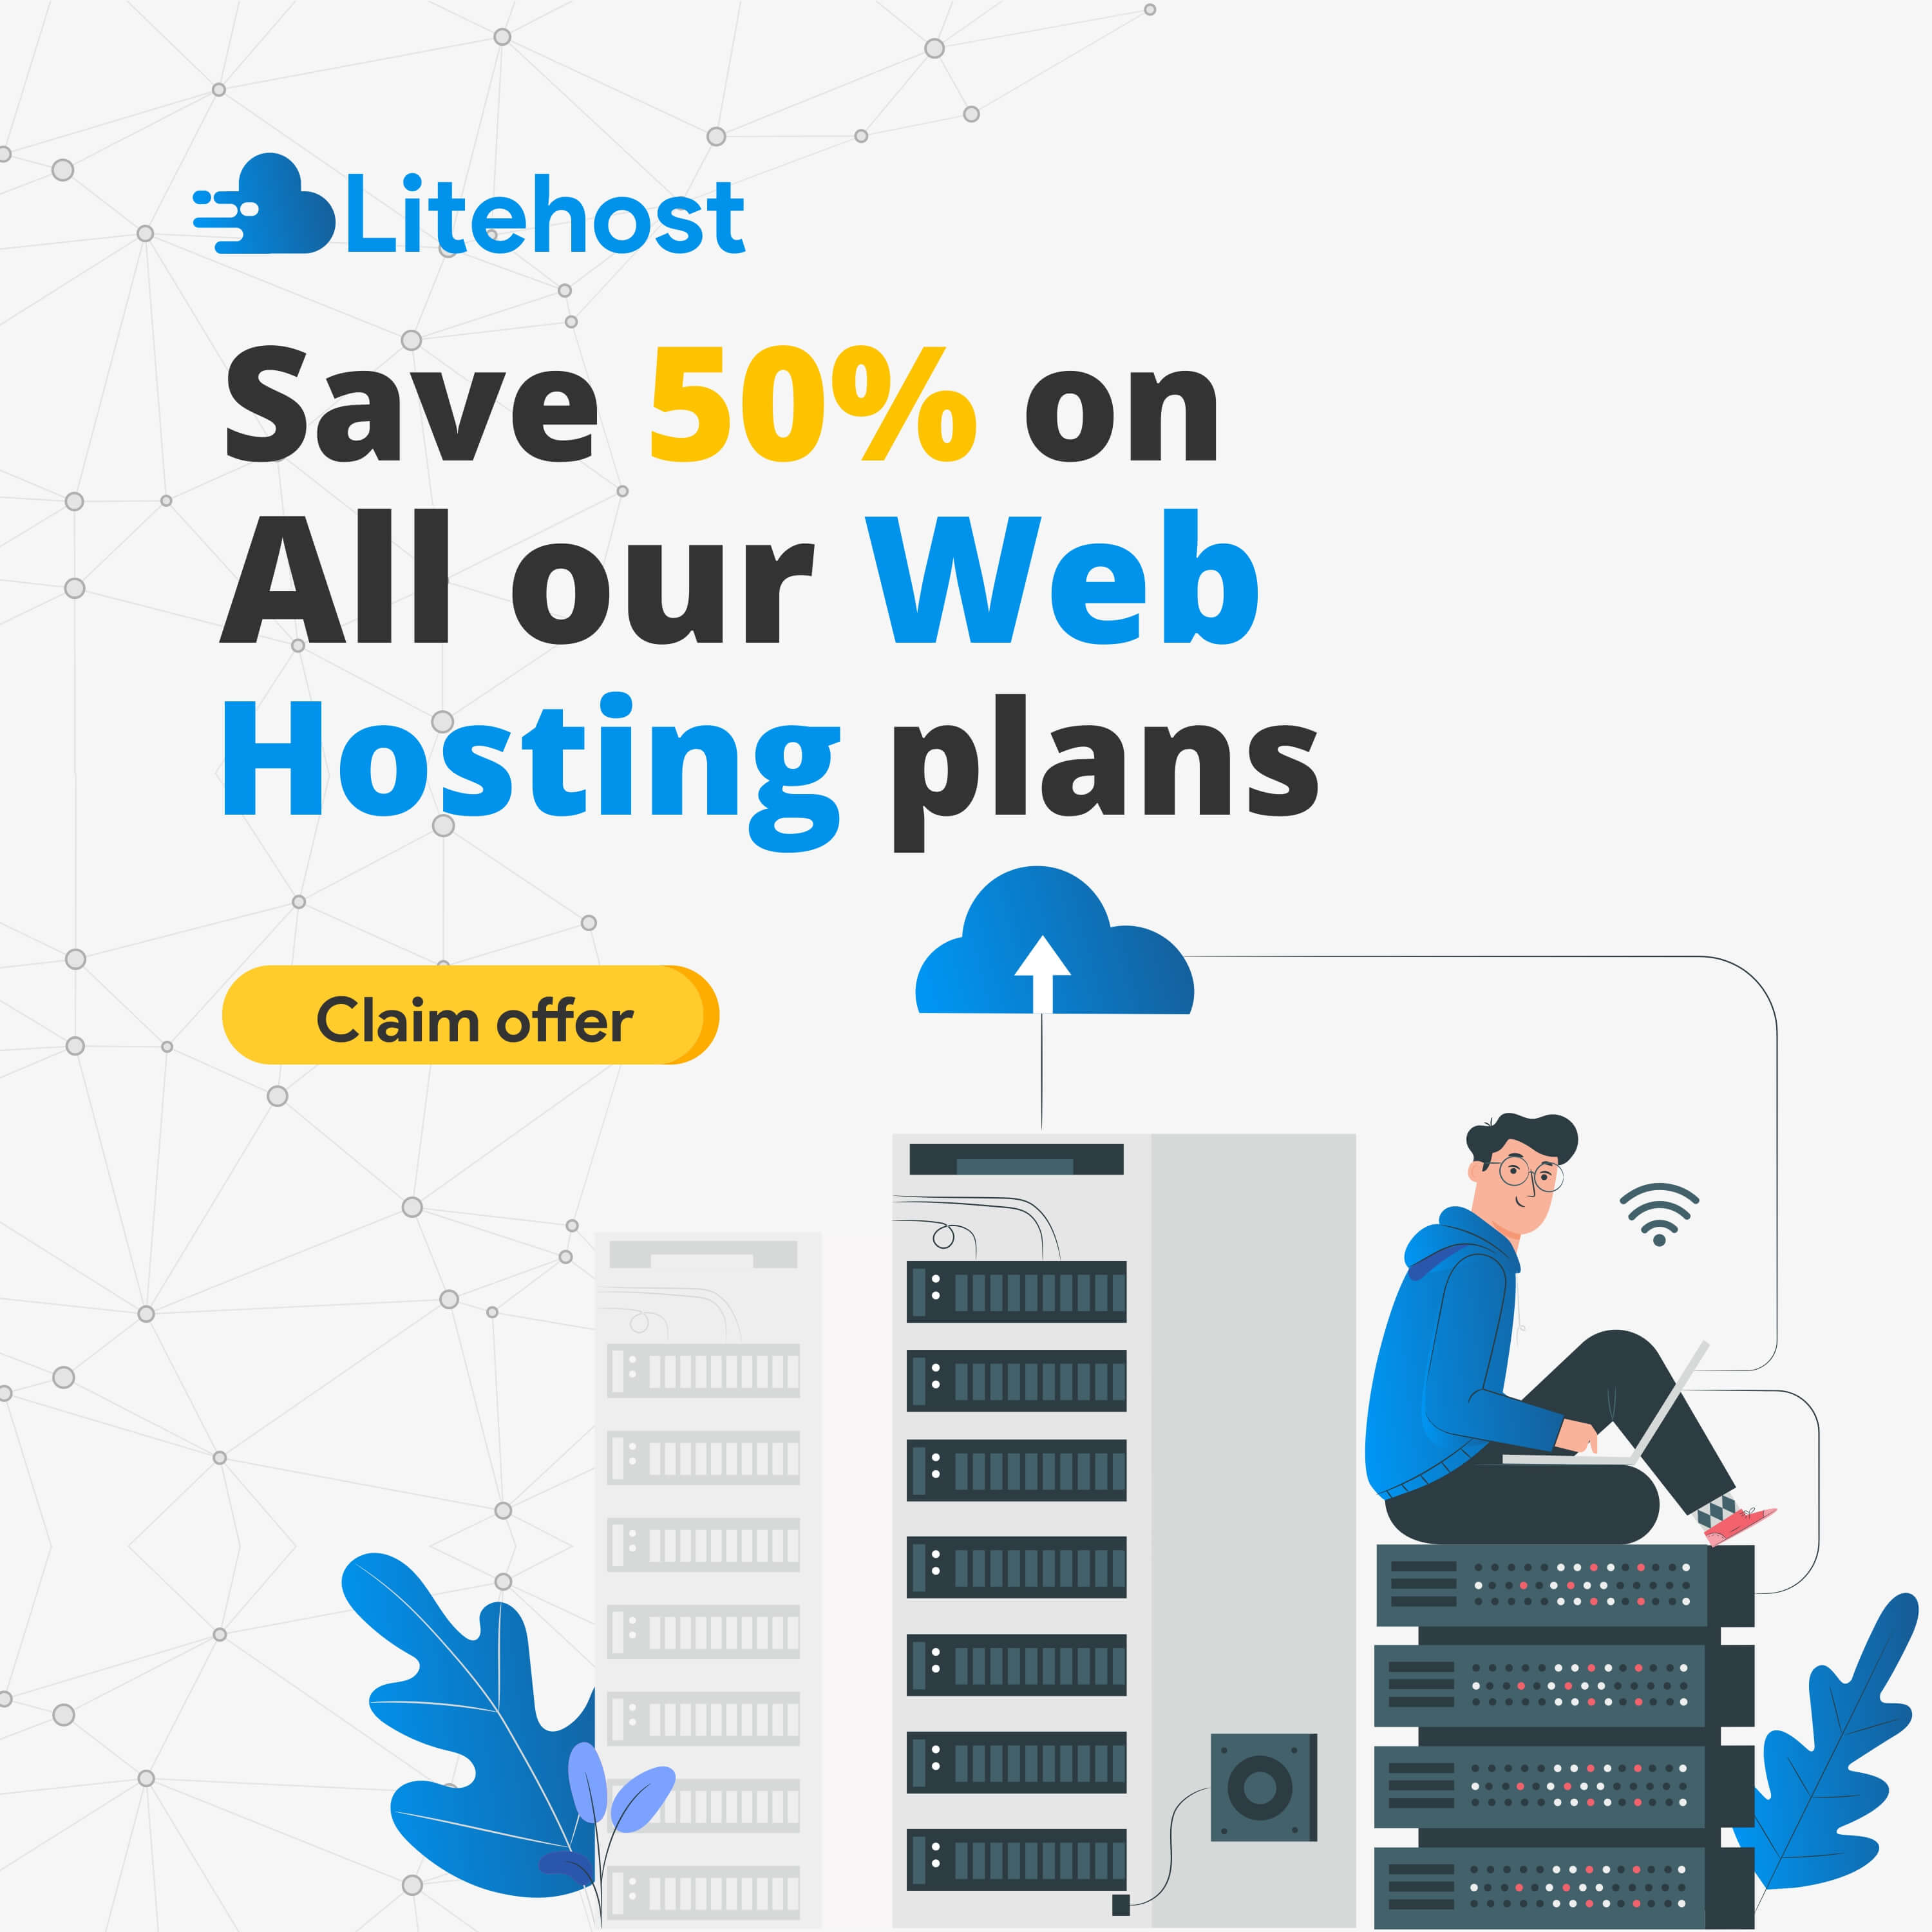 Litehost ad